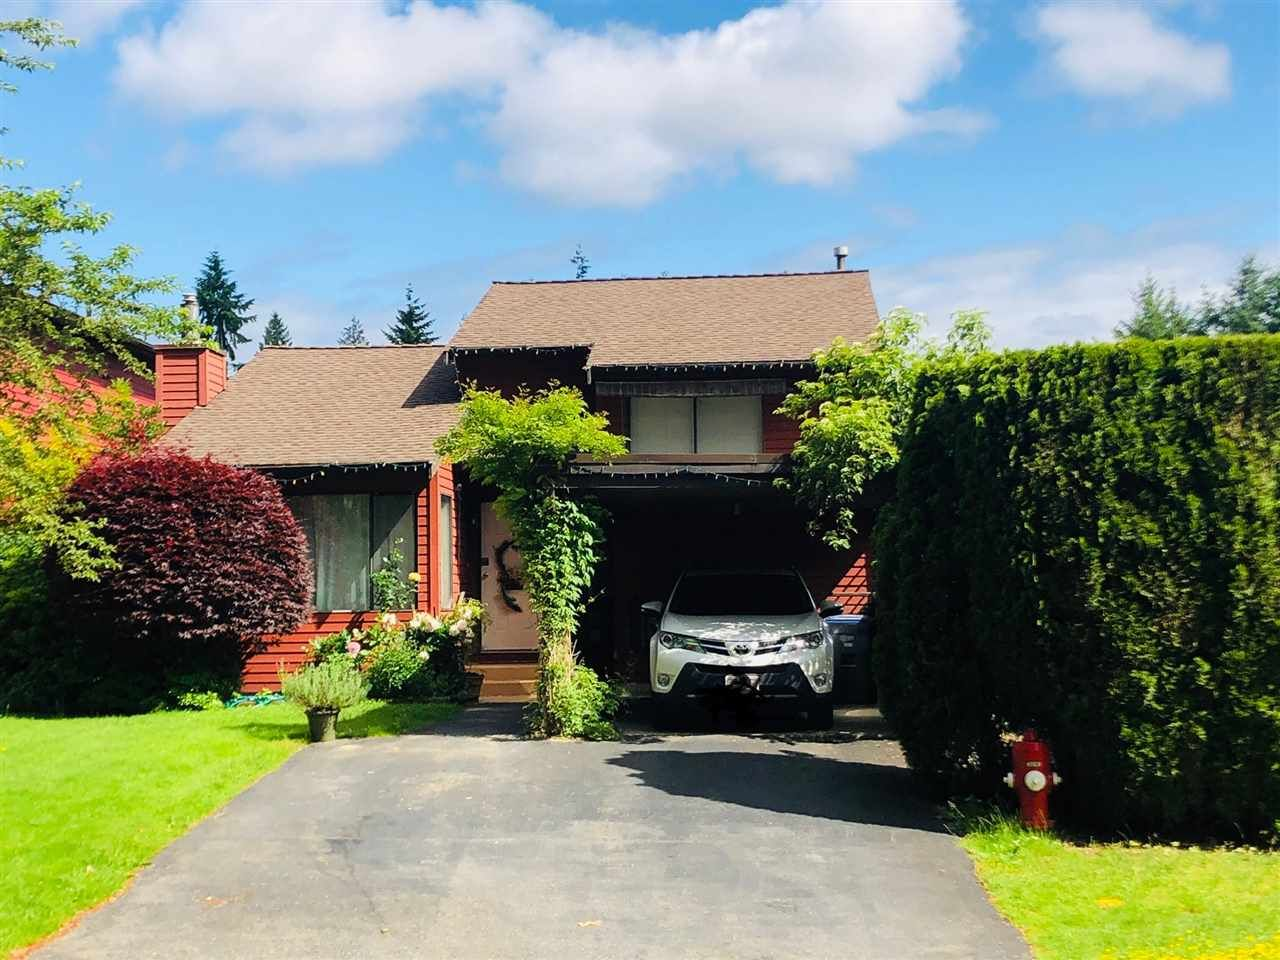 Main Photo: 14799 101 Avenue in Surrey: Guildford House for sale (North Surrey)  : MLS®# R2492723